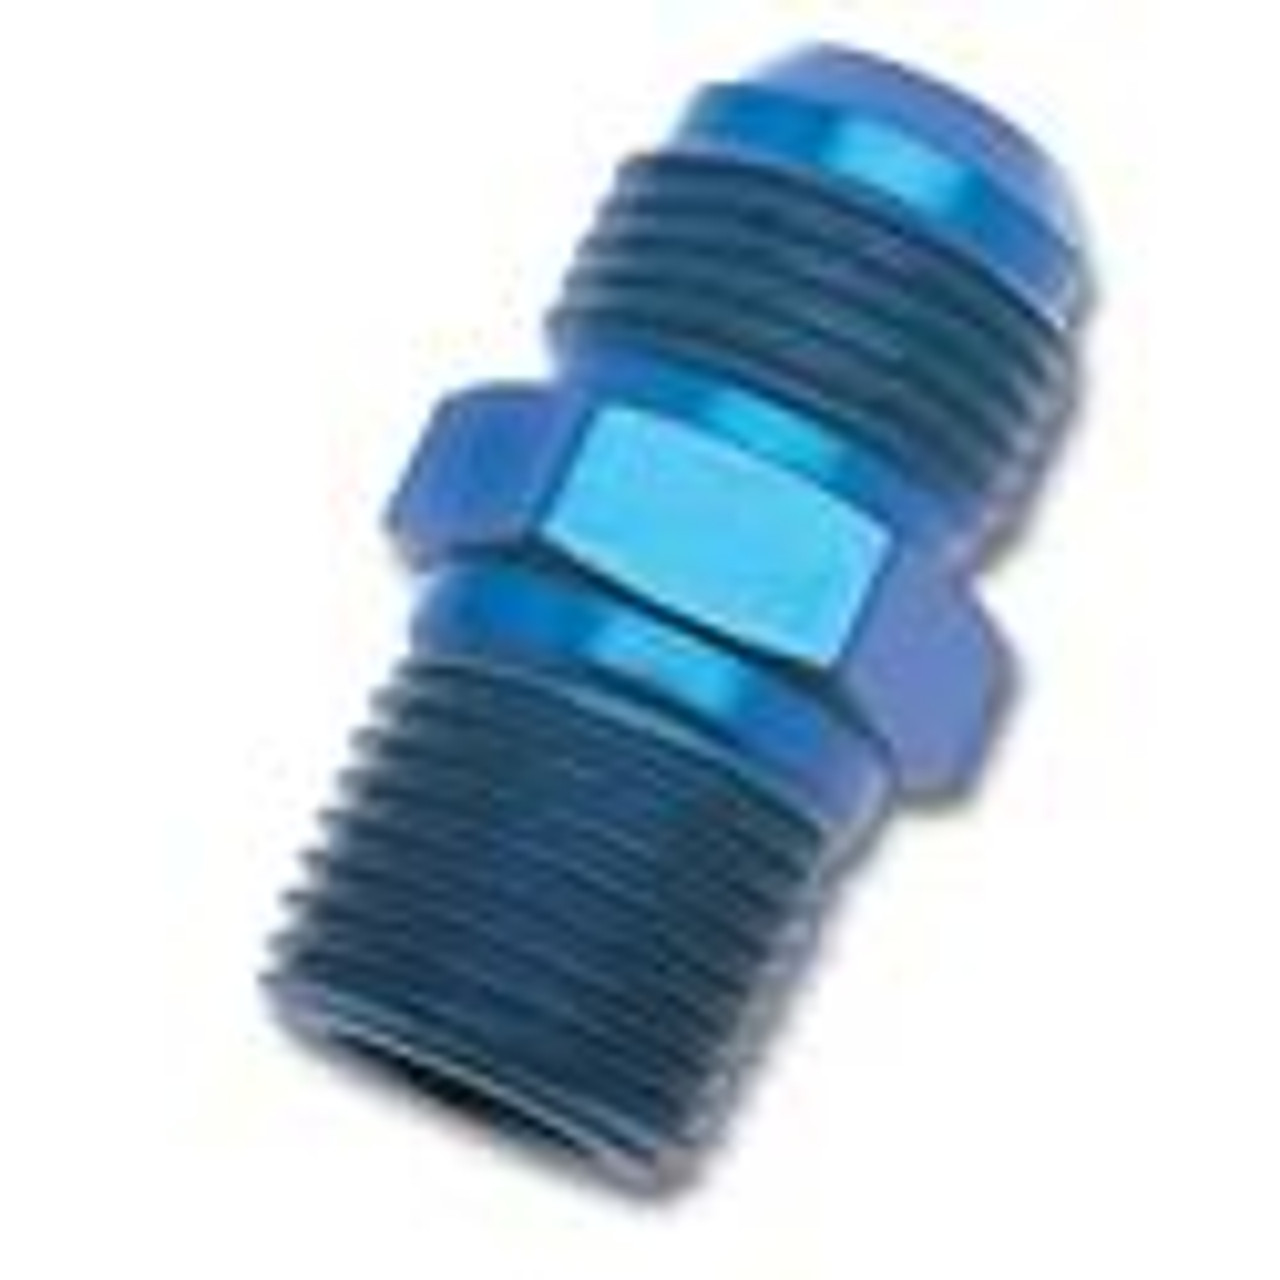 Russell Straight -6 AN to 3/8 Pipe Adapter Fitting